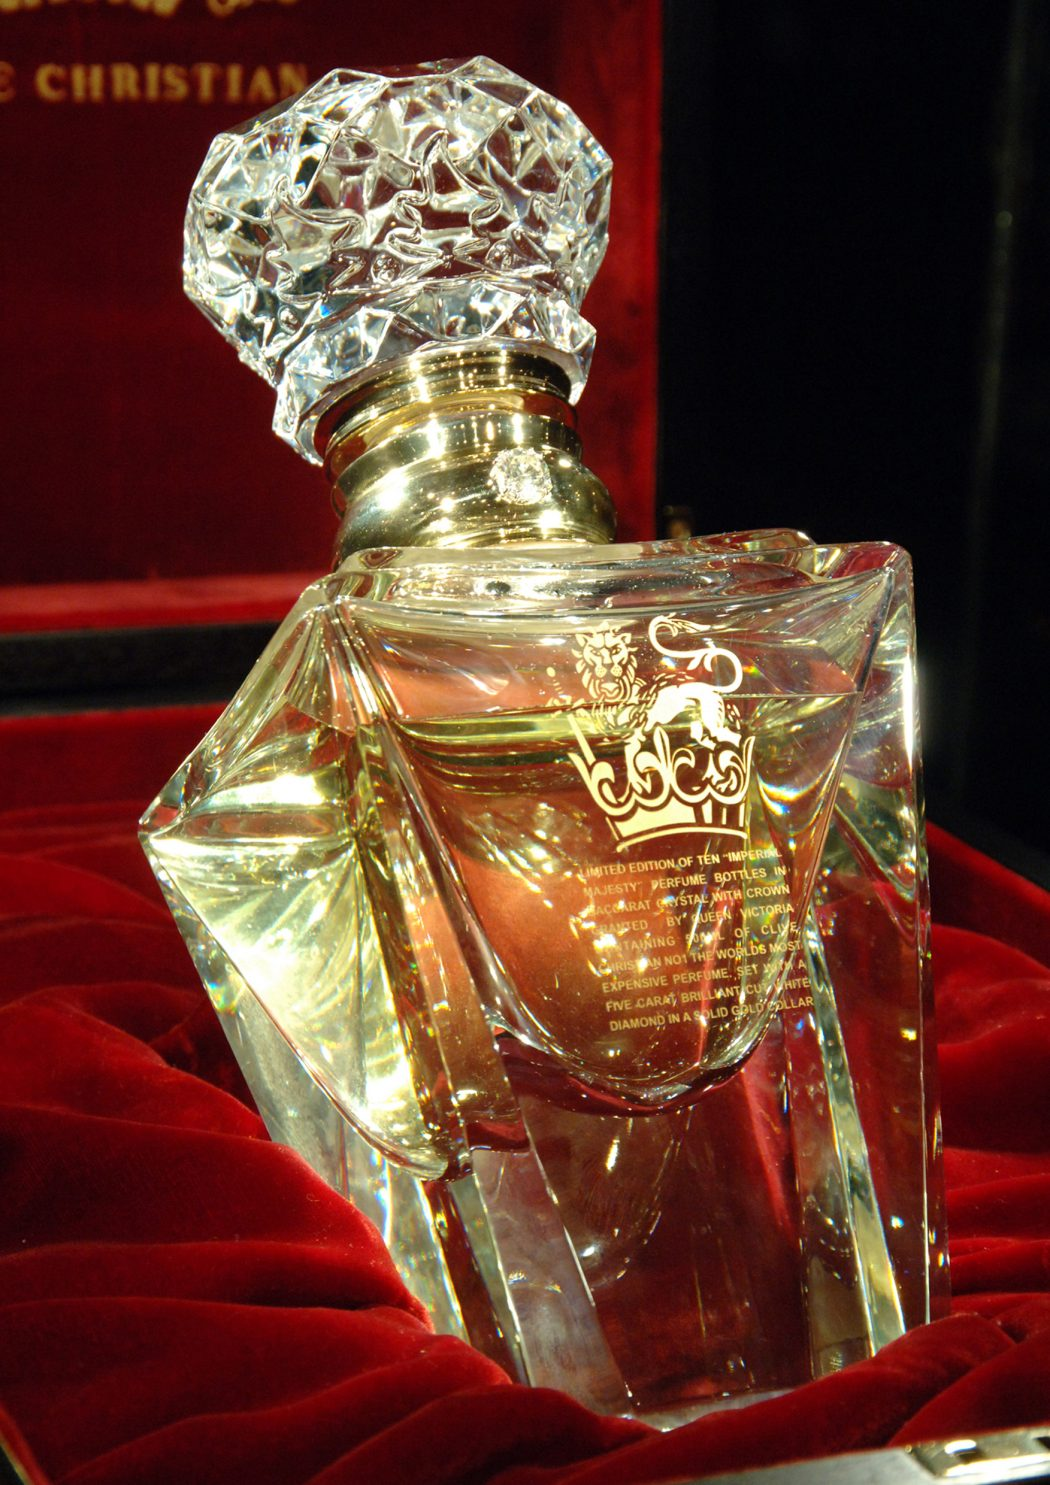 clive christian no-1 perfume imperial majesty edition closeup